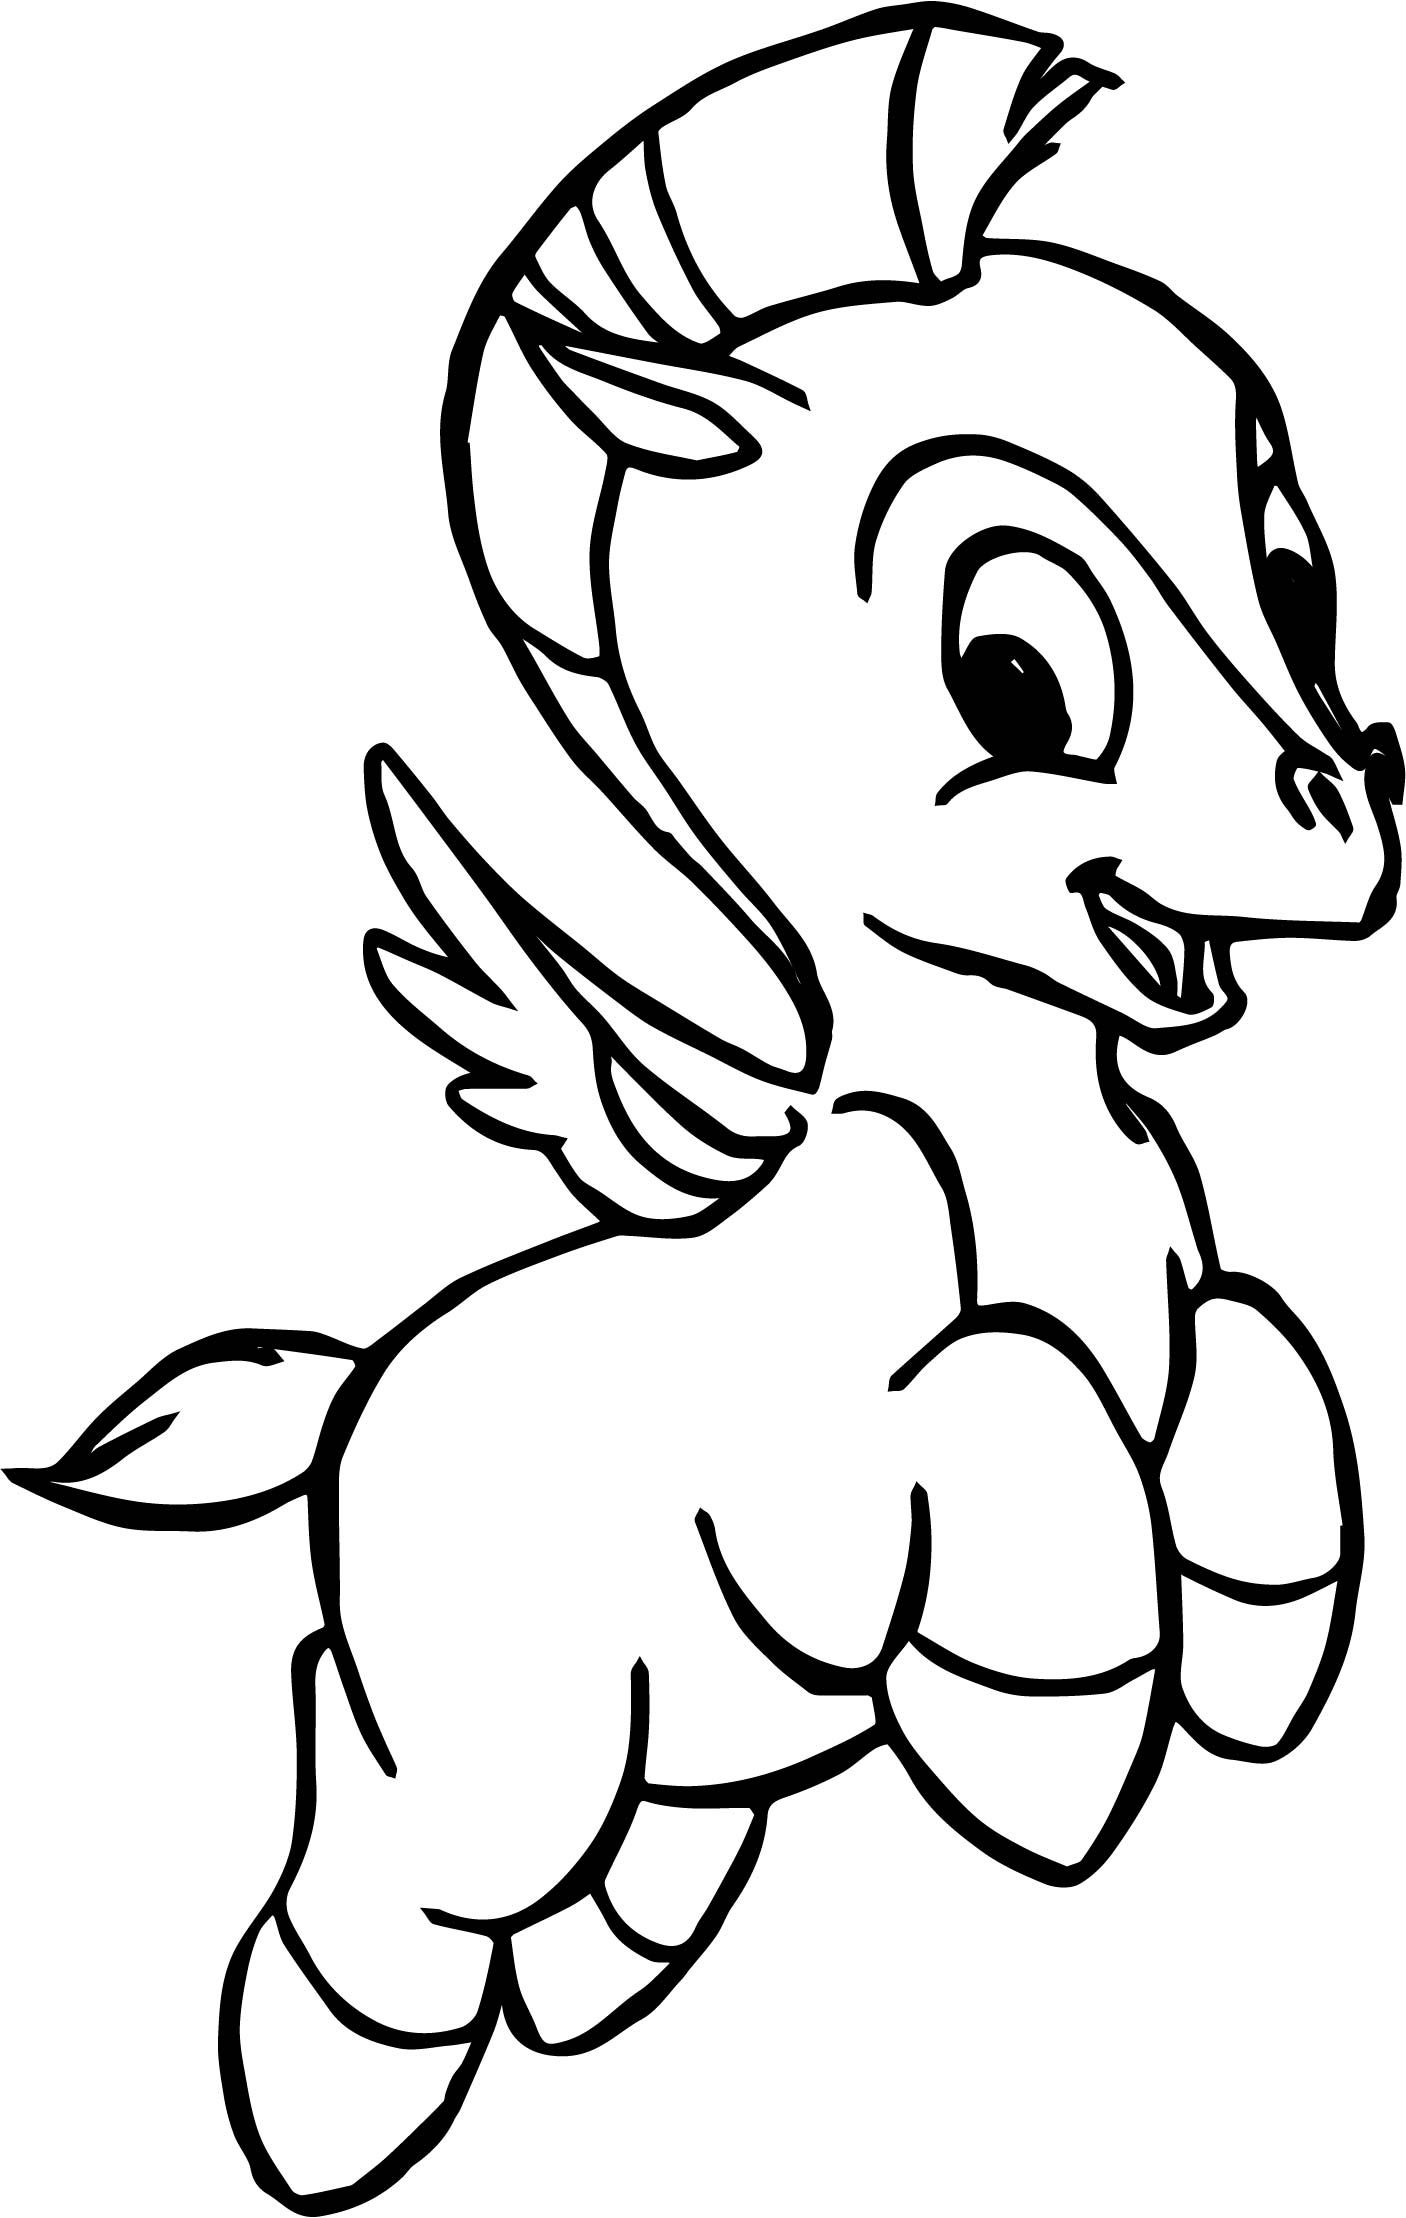 Baby Pegasus Coloring Pages To Print Free Coloring Books Coloring Pages Drawings Nemo Coloring Pages